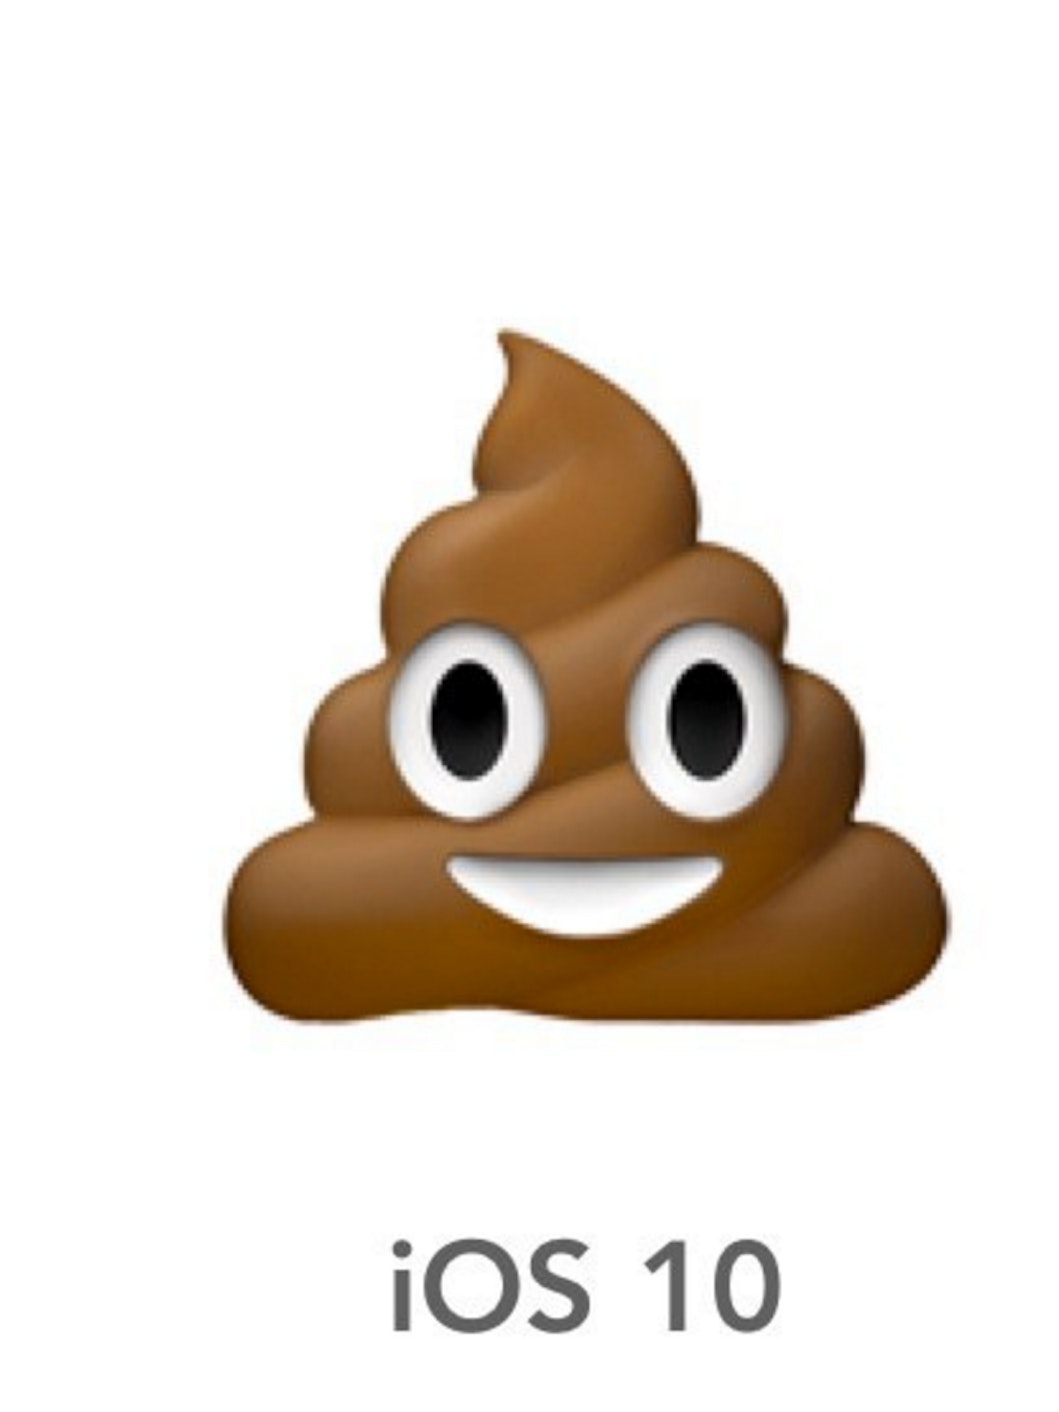 The poo emoji looks different in iOS 10.